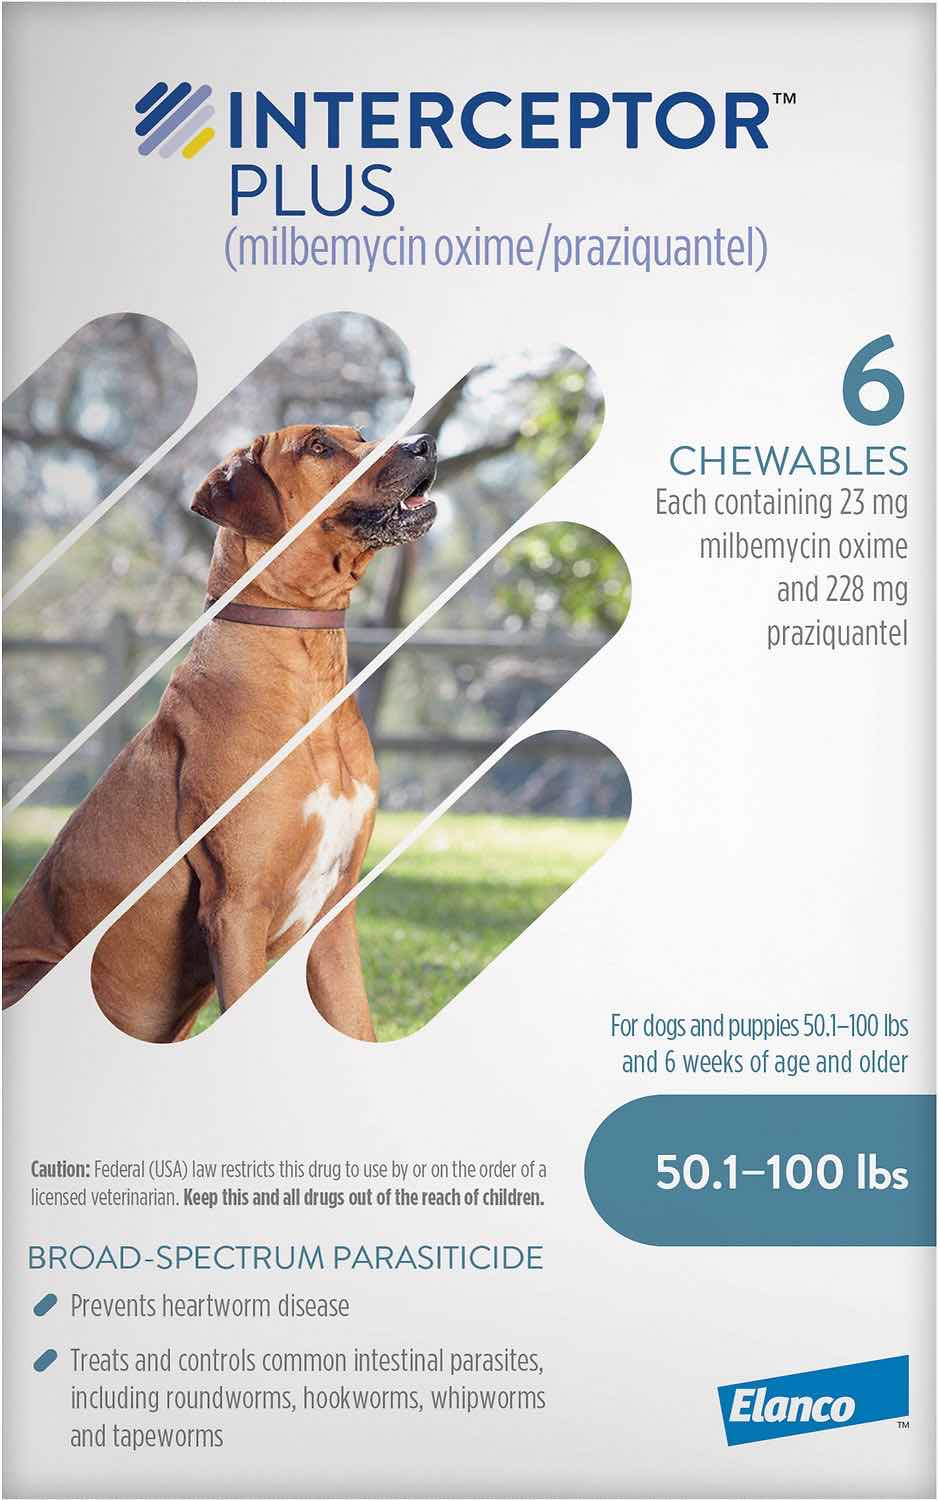 Interceptor Plus 6 chewables for dogs 50.1-100 lbs (Blue) 1